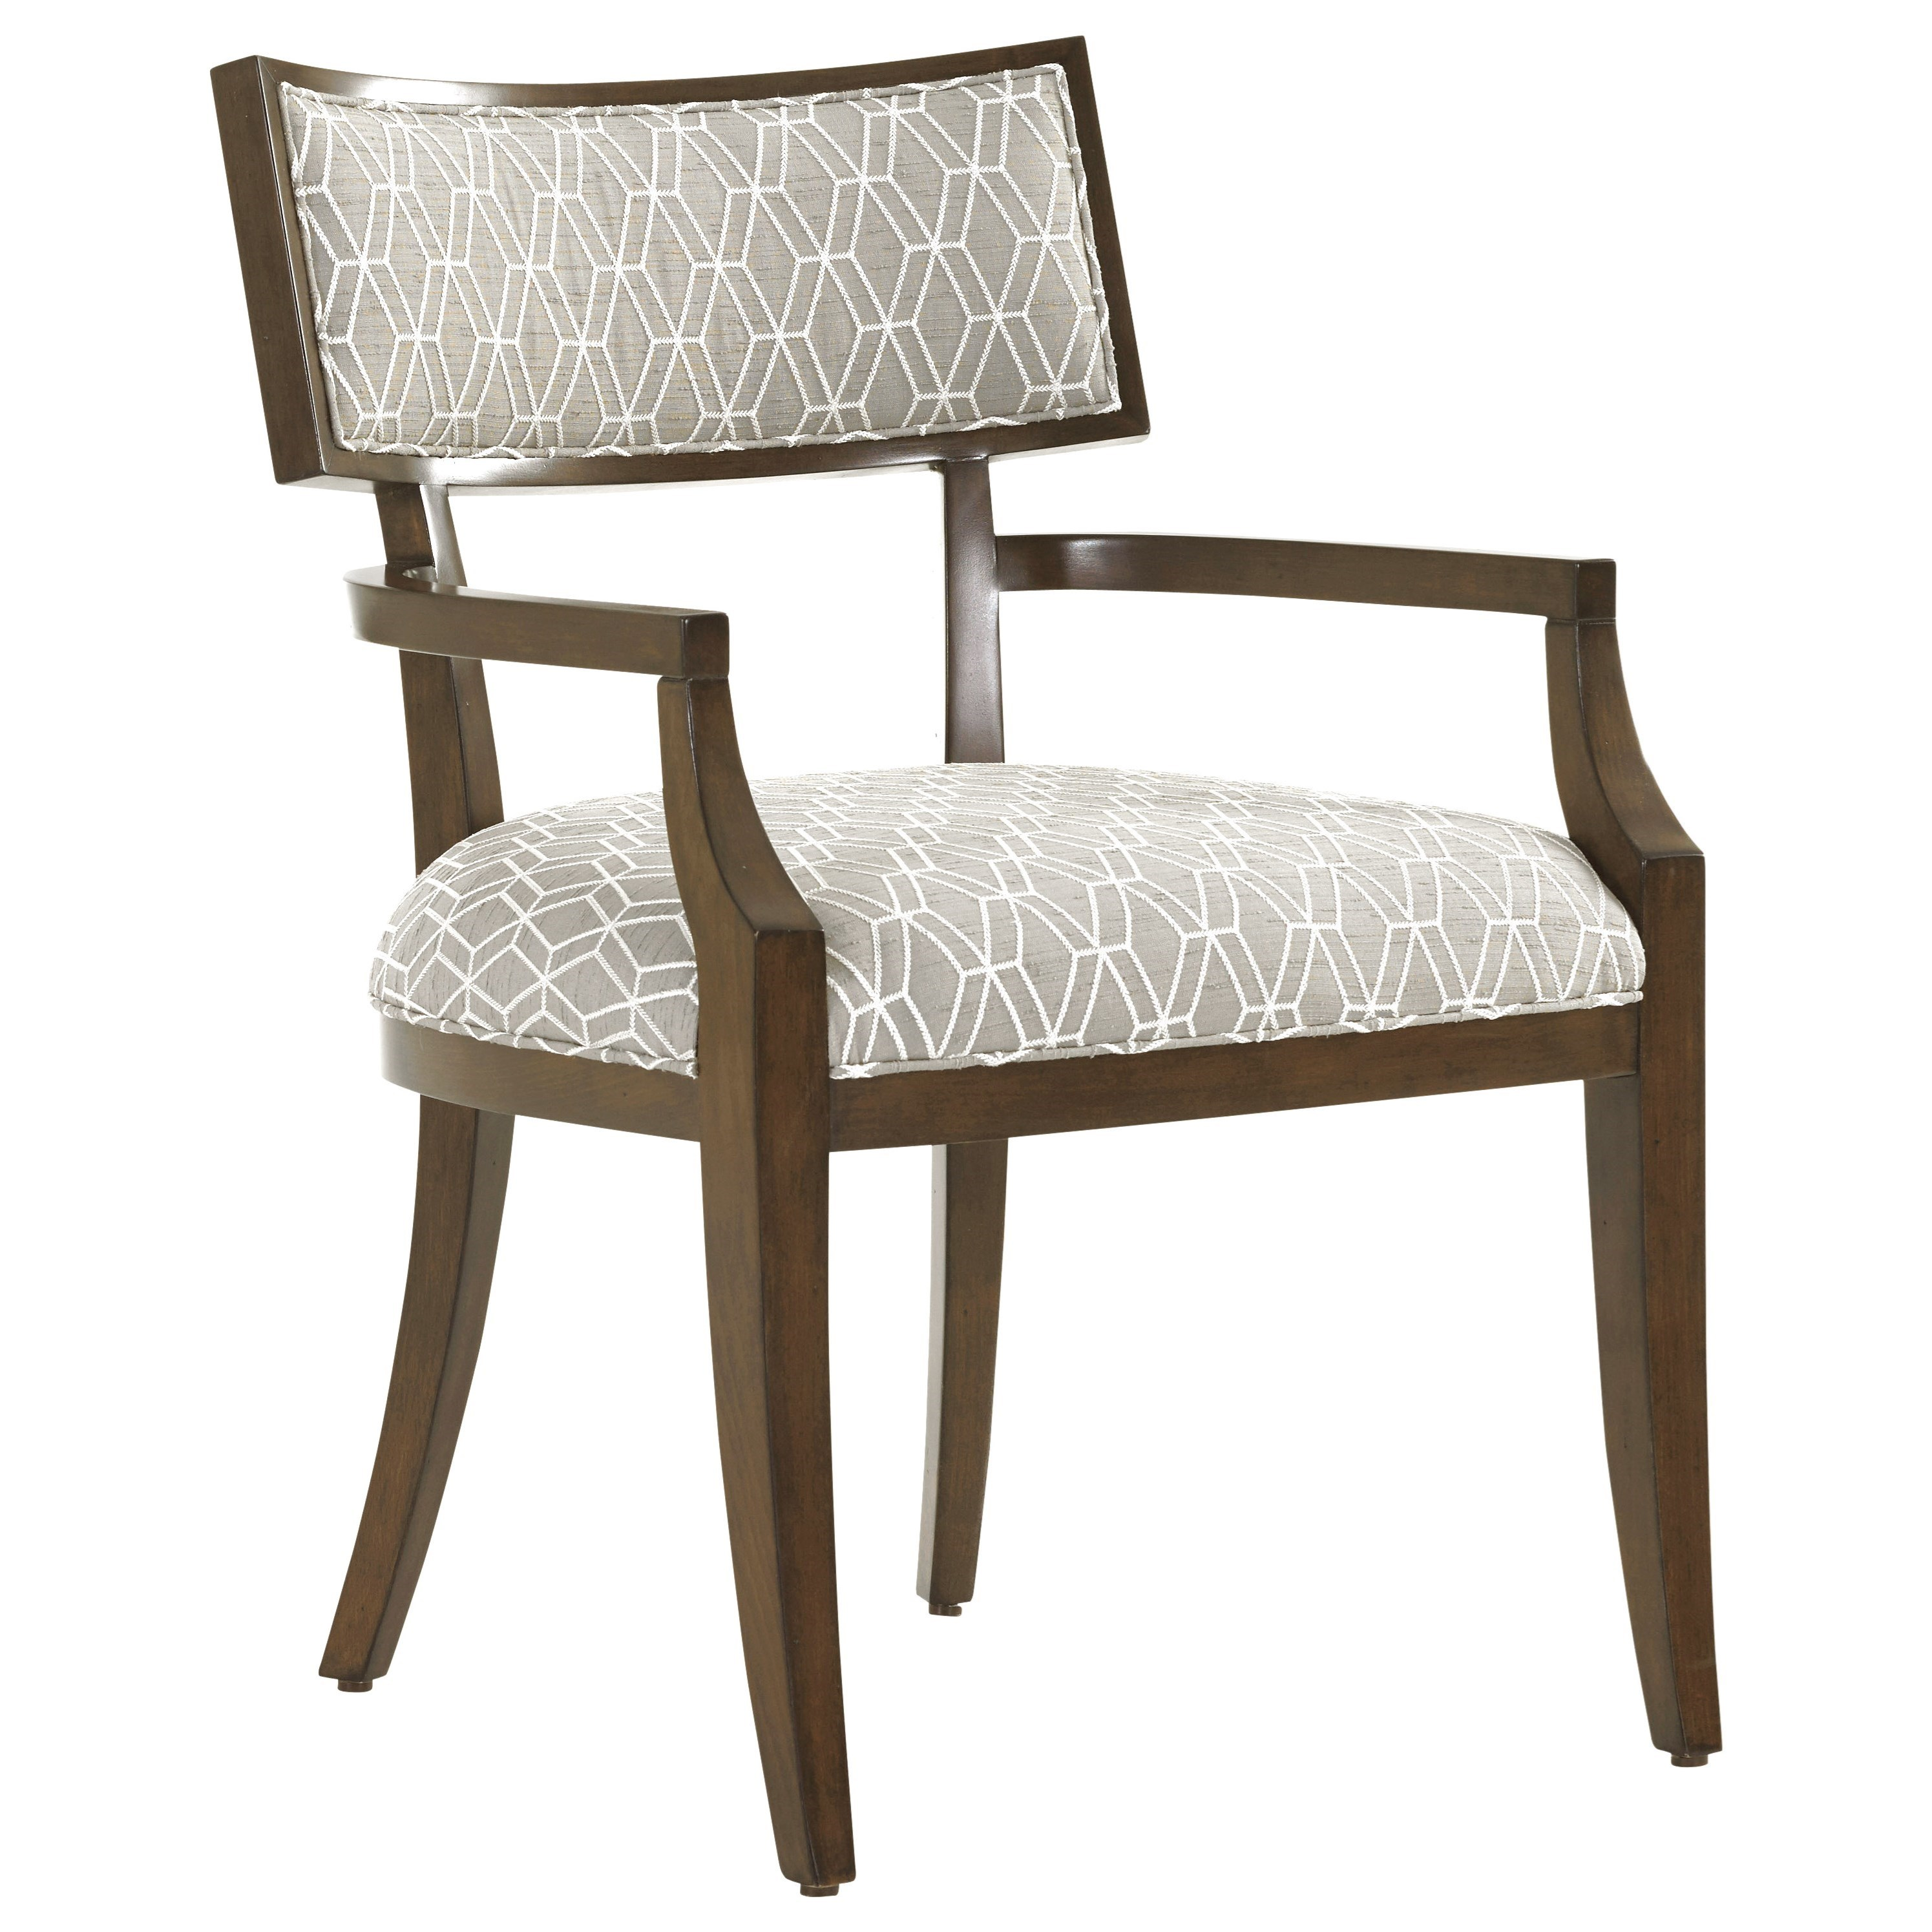 MacArthur Park Whittier Arm Chair in Custom Fabric by Lexington at Johnny Janosik